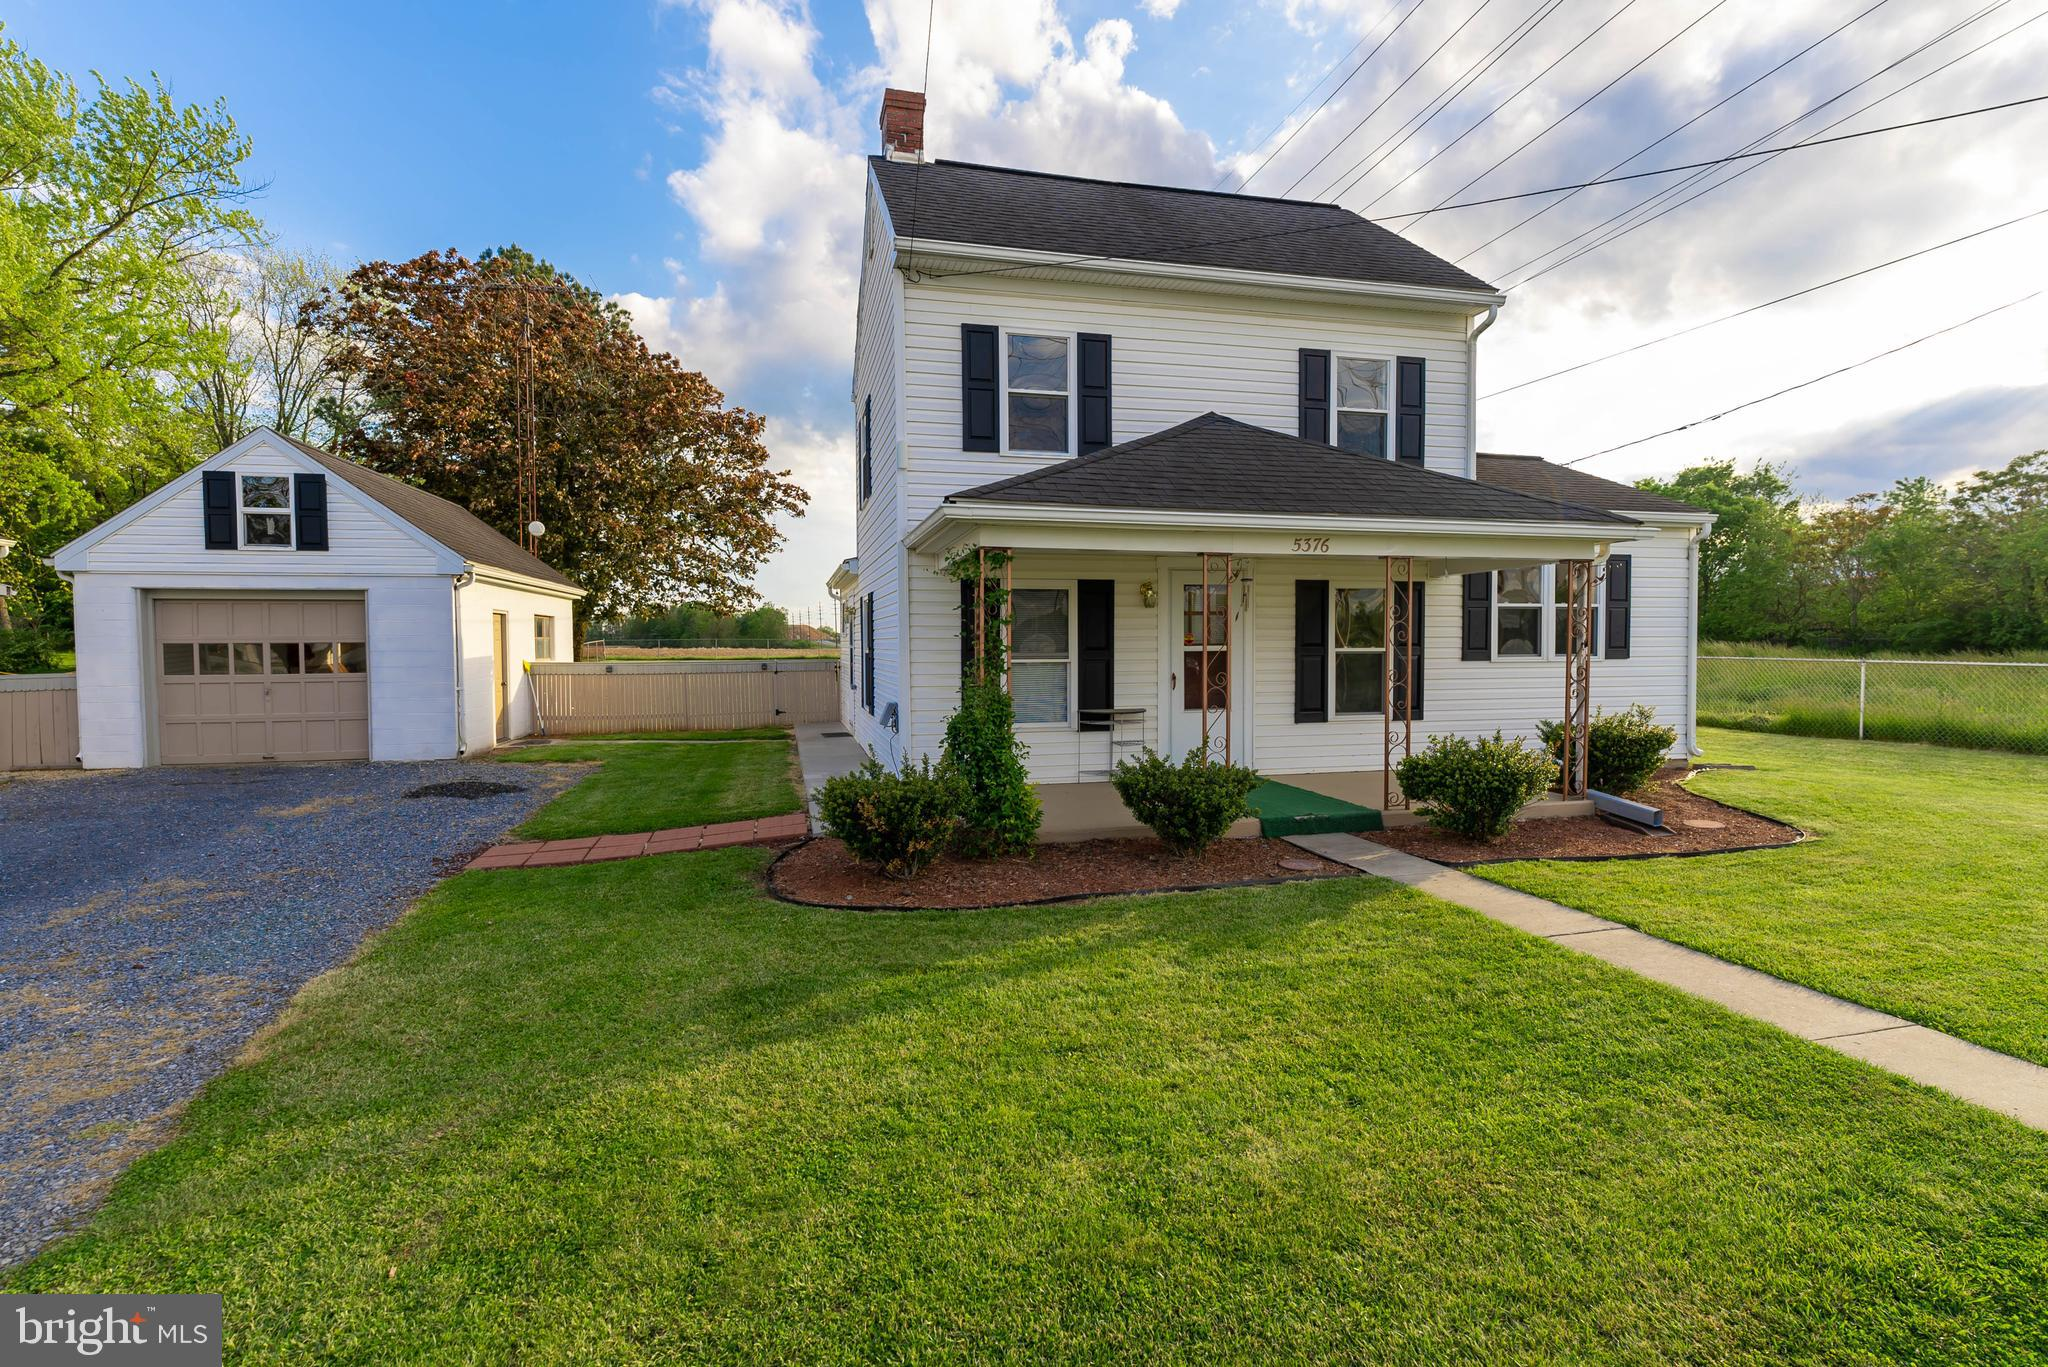 Remodeled farm house located close to I81.  Close to P&G and Amazon facility.  Lovely corner lot wit